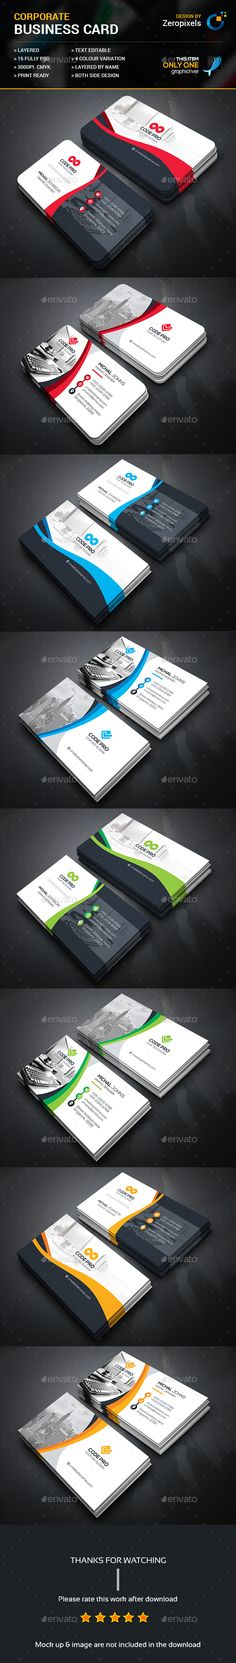 Business Card Bundle — Photoshop PSD #both side design #graphic • Available here → https://graphicriver.net/item/business-card-bundle/18036824?ref=pxcr